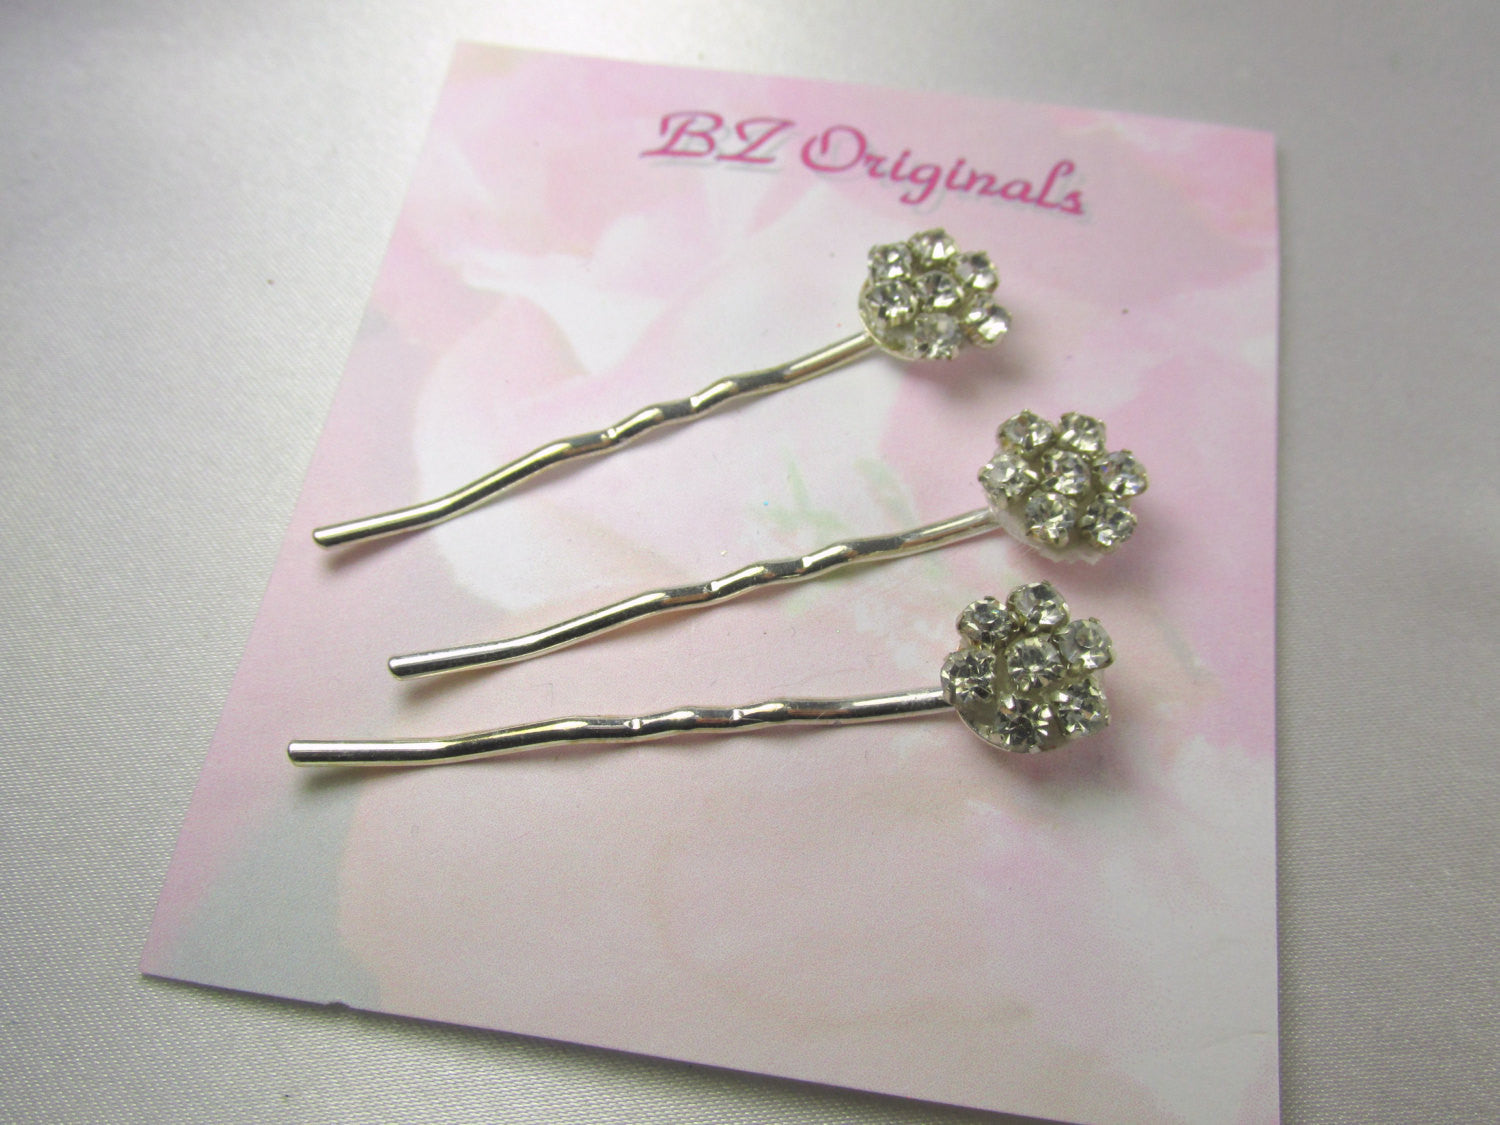 Crystal Rhinestone Flower Bobby Pins for Bridal, Bridesmaid or Prom Hair Decoration - Odyssey Creations